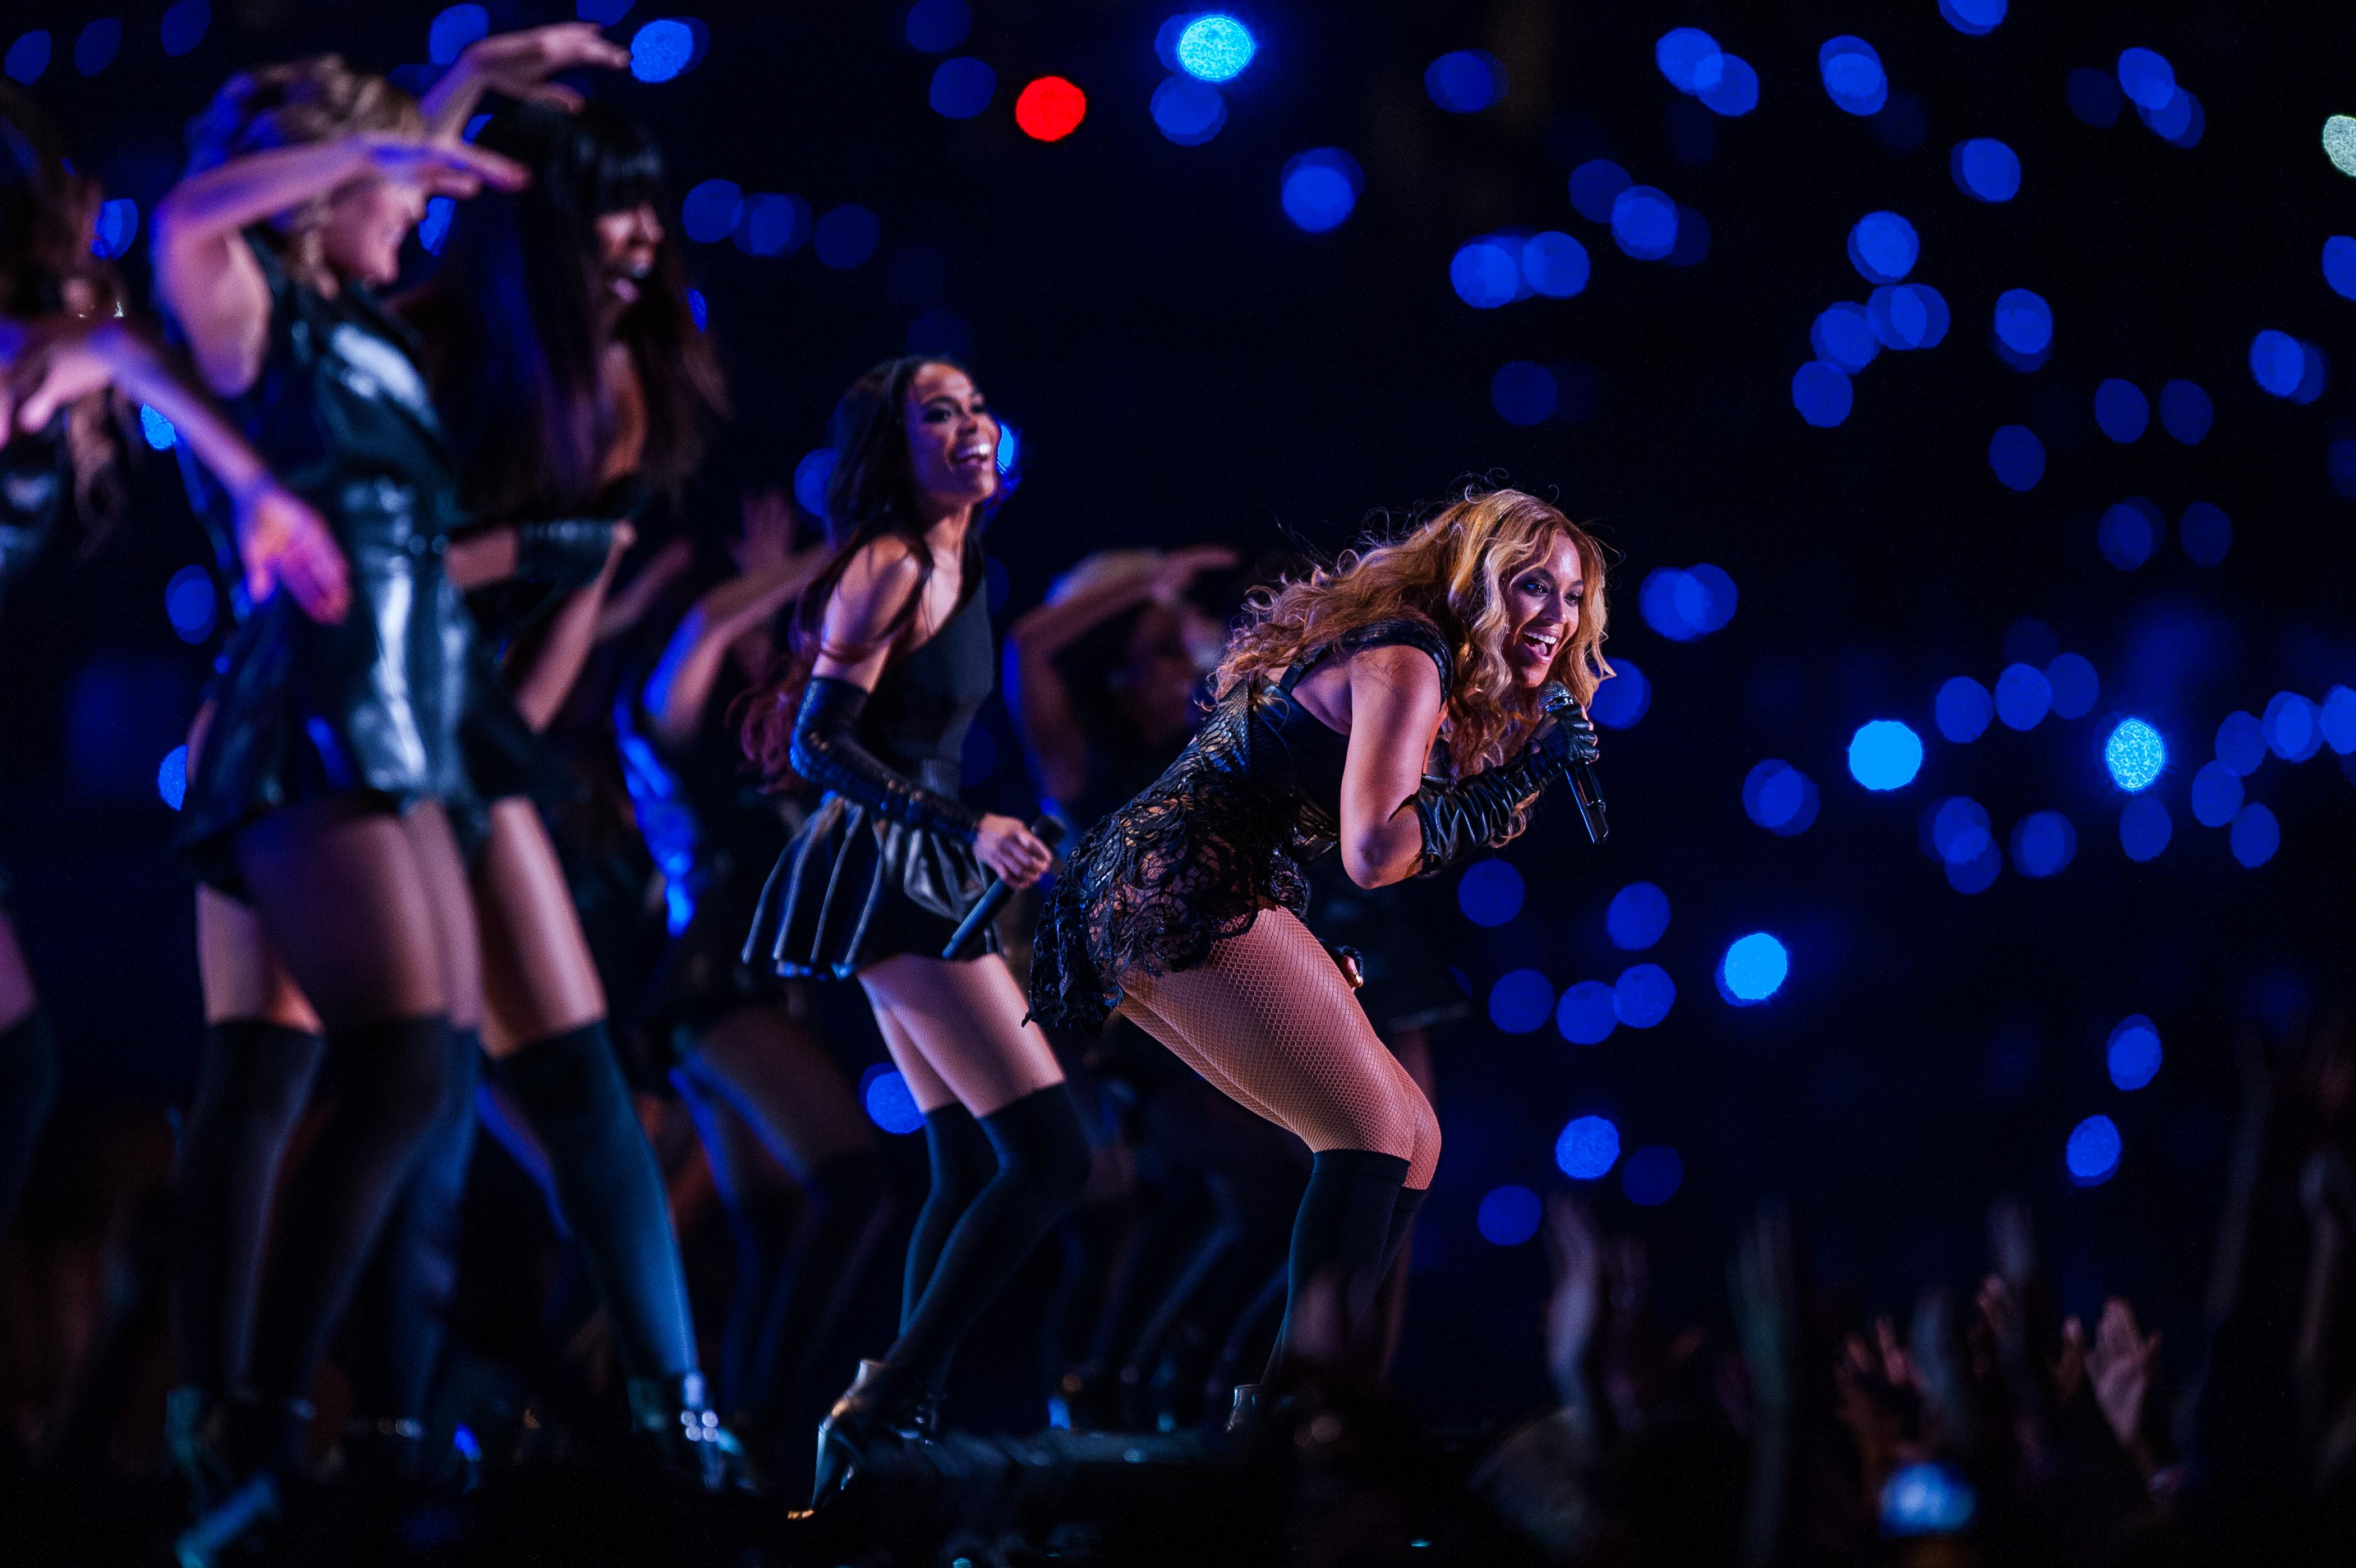 Beyonce put on an electrifying performance at the Super Bowl in New Orleans